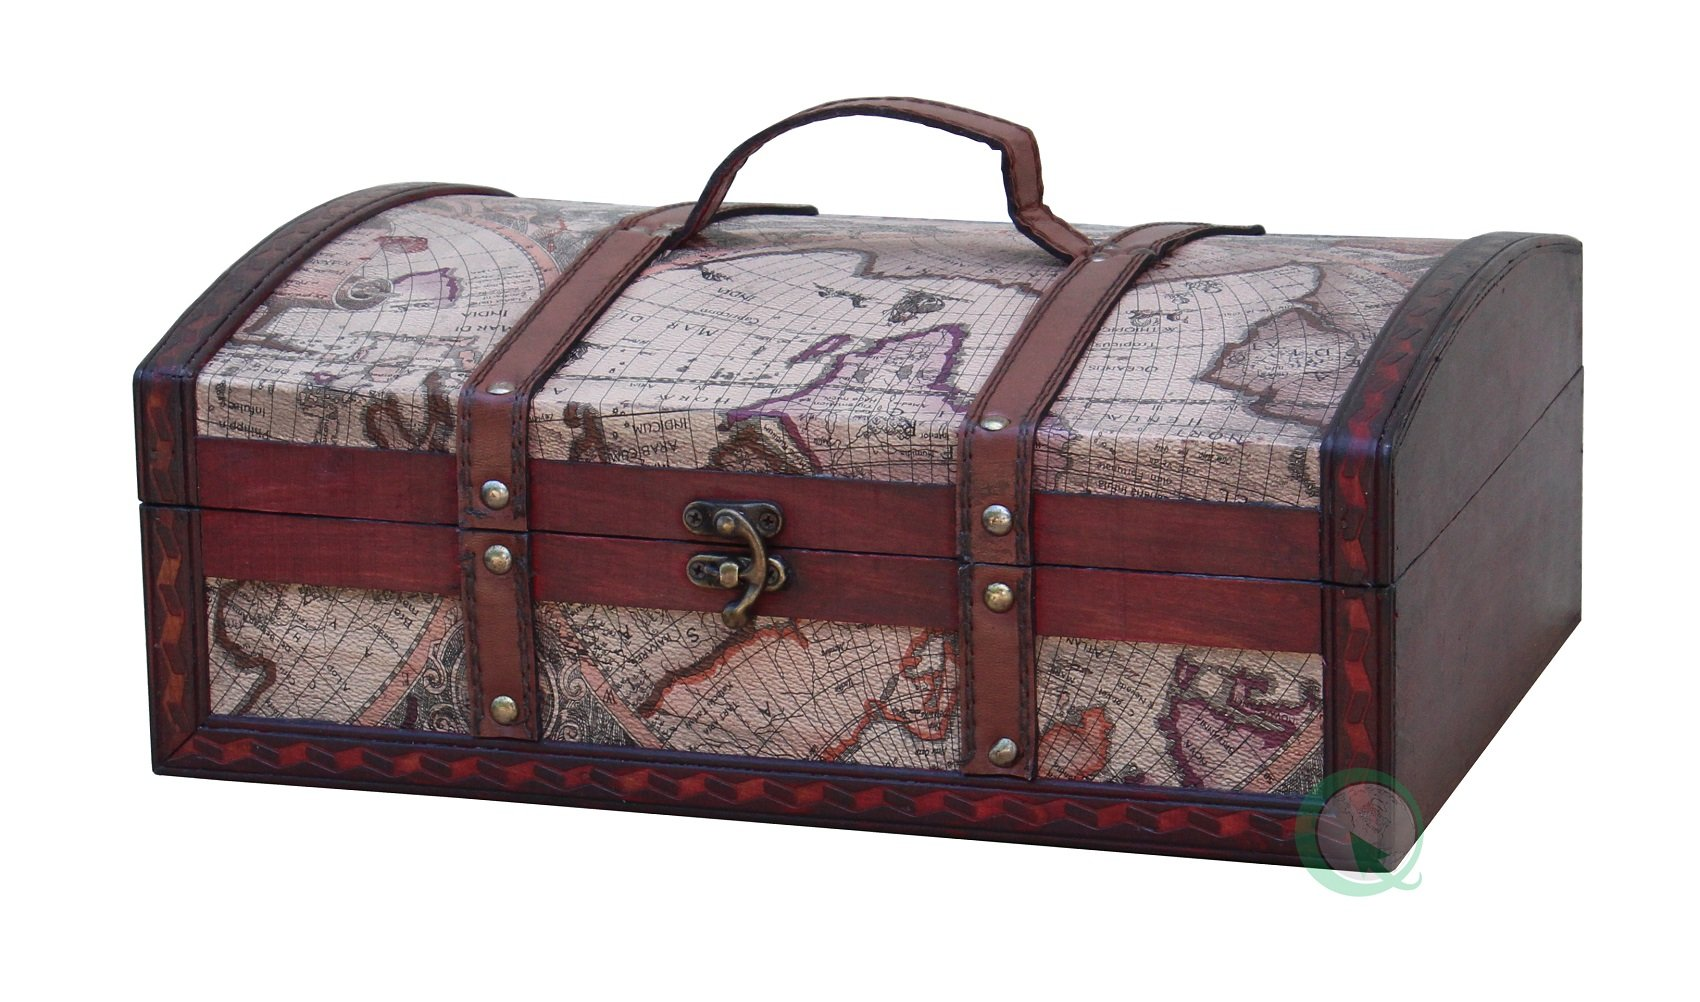 Old World Map Treasure Chest - 14 Inch.